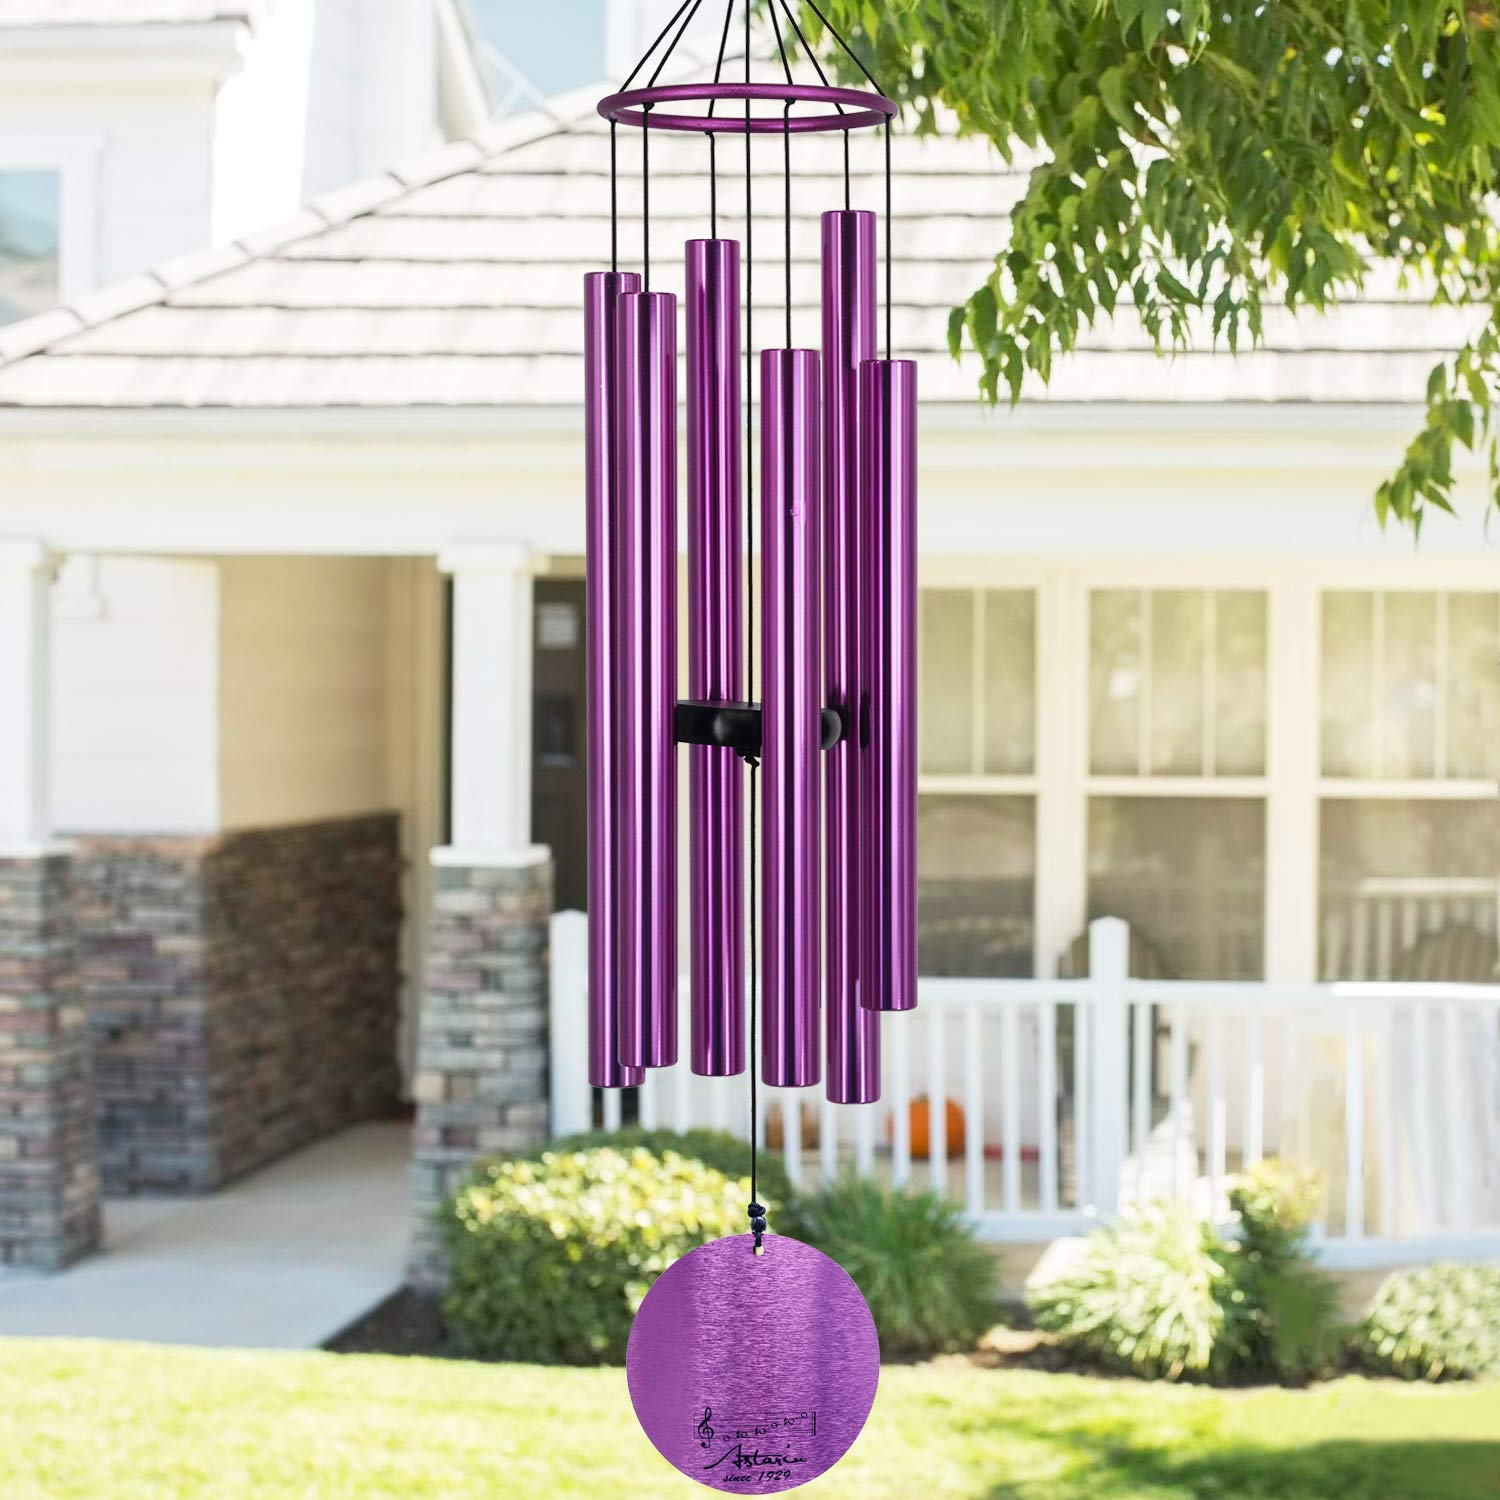 Memorial Wind Chimes Outdoor Large Deep Tone,36 Inch Wind Chimes Unique Tuned Relaxing Soothing Melody,Sympathy WindChimes for Mom,Dad,Garden, Yard, Patio, Porch,Home Decoration and Gift,(Purple)